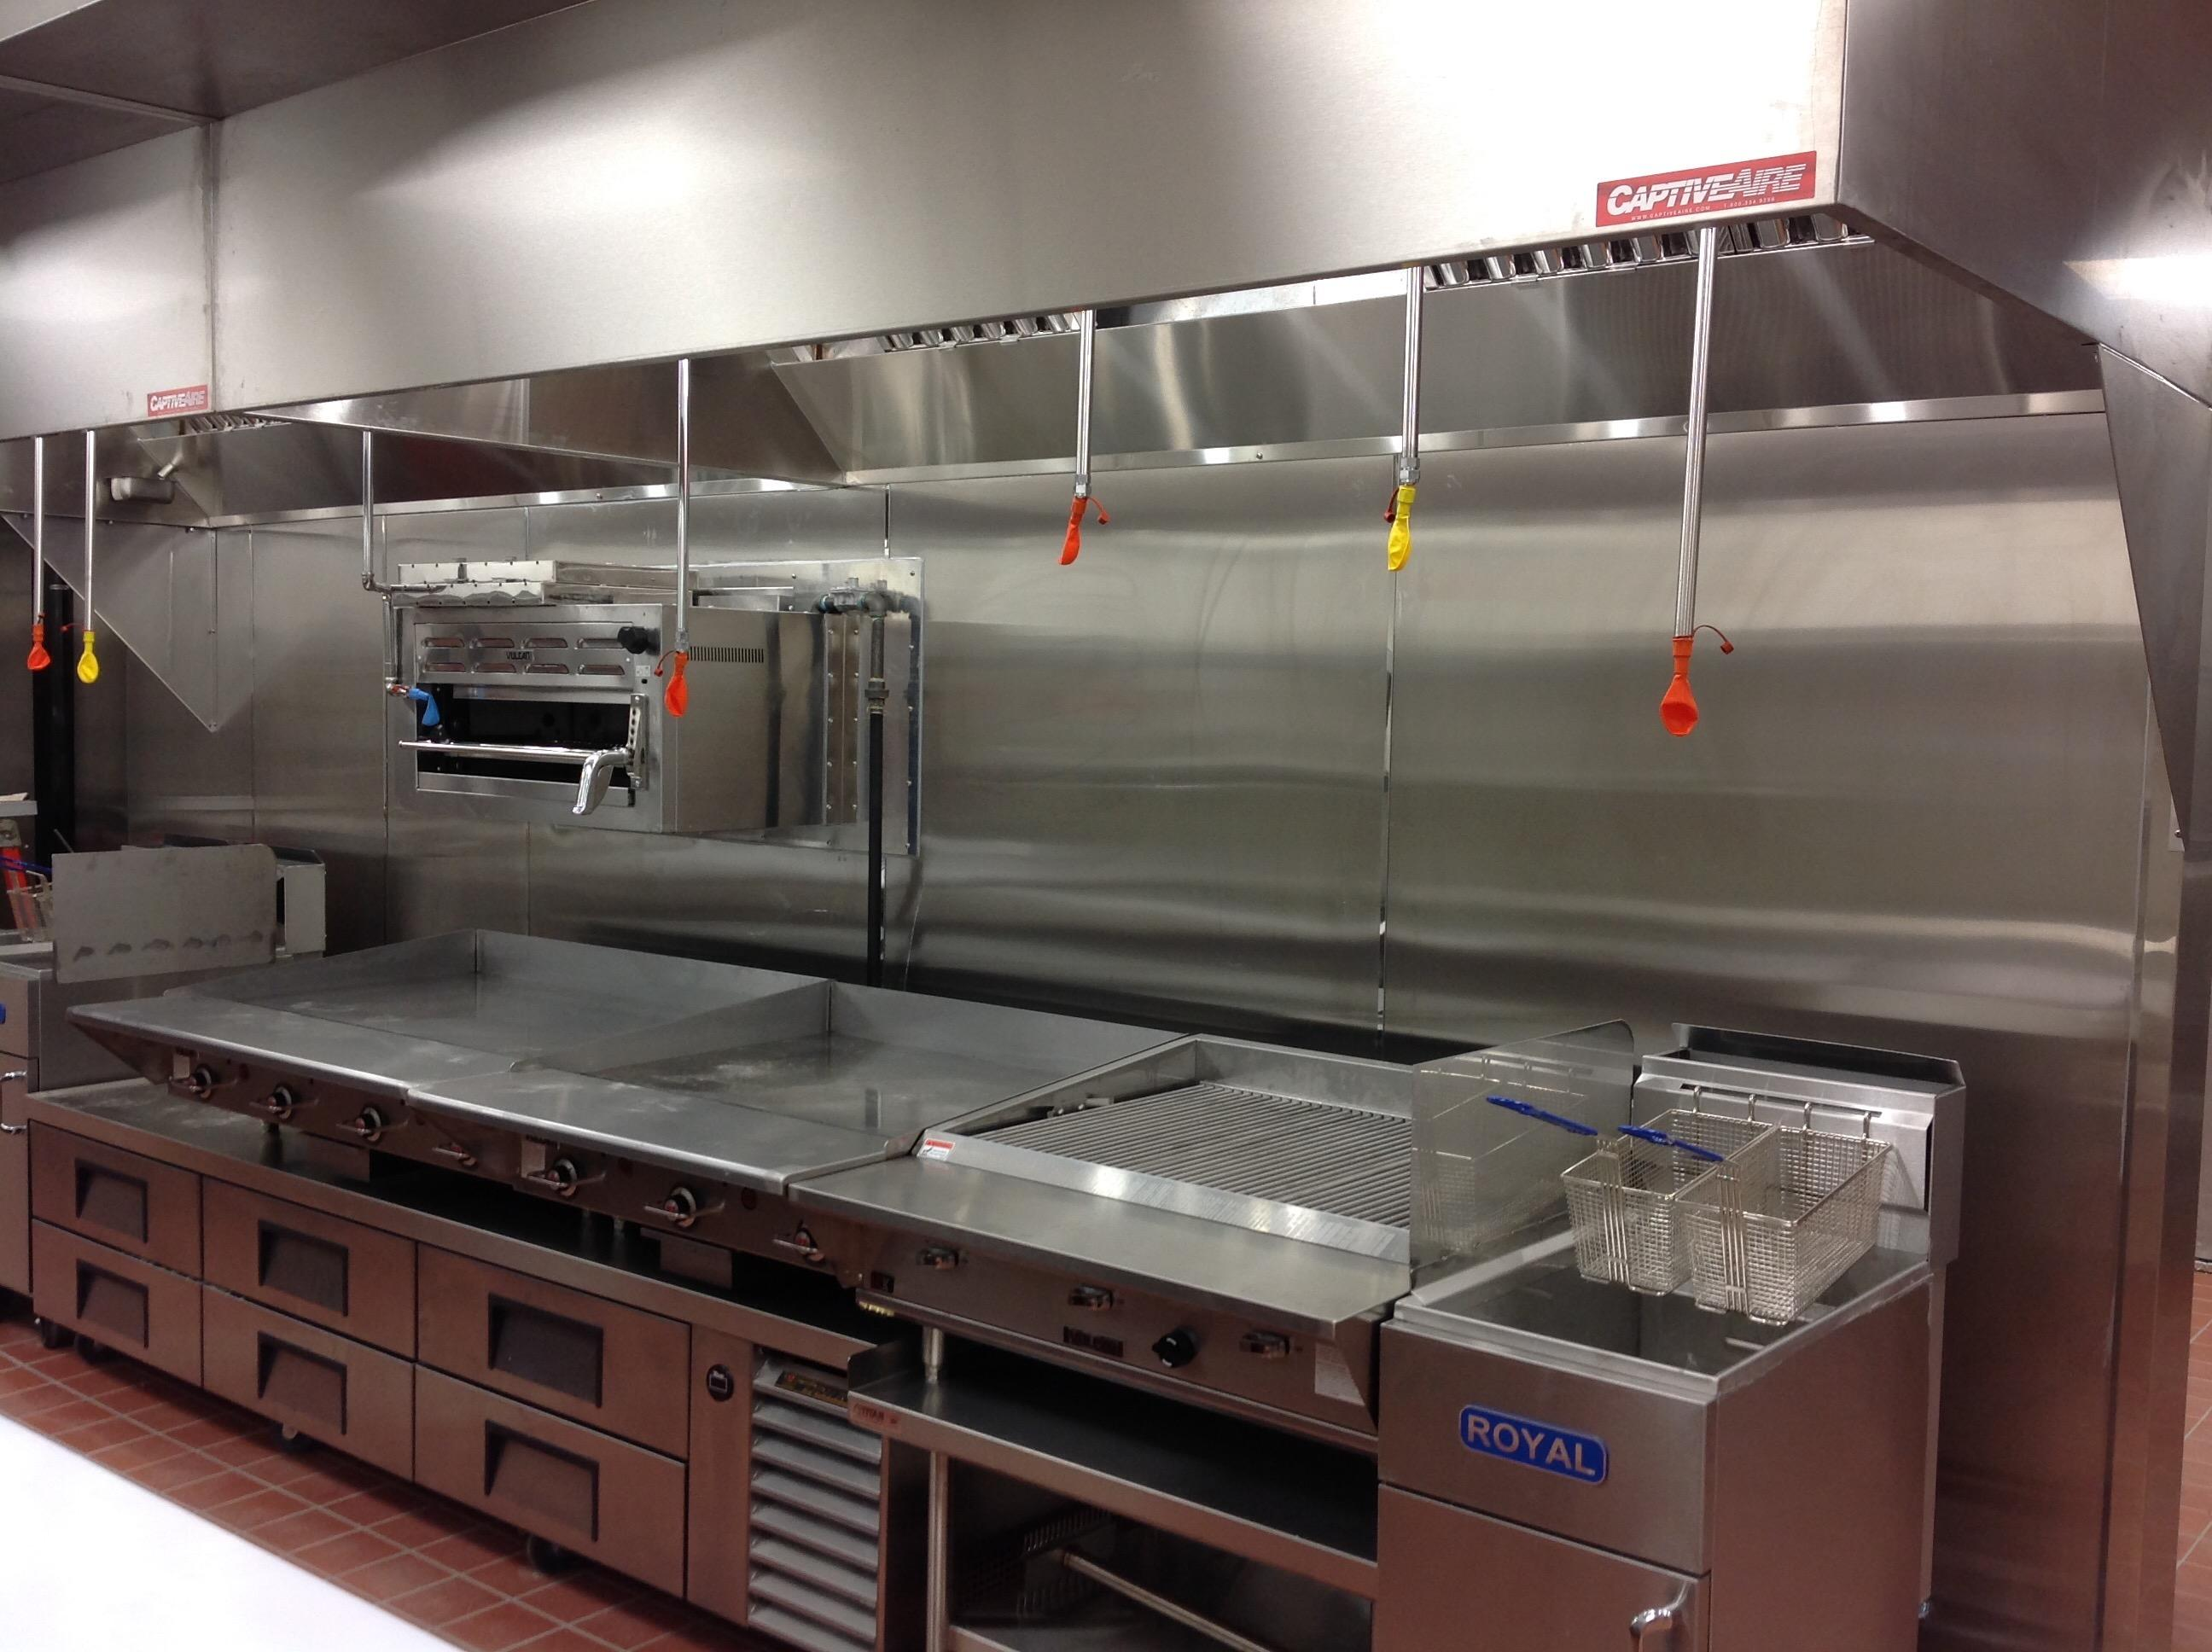 commercial kitchen ventilation sink types materials and safety llc in godwin